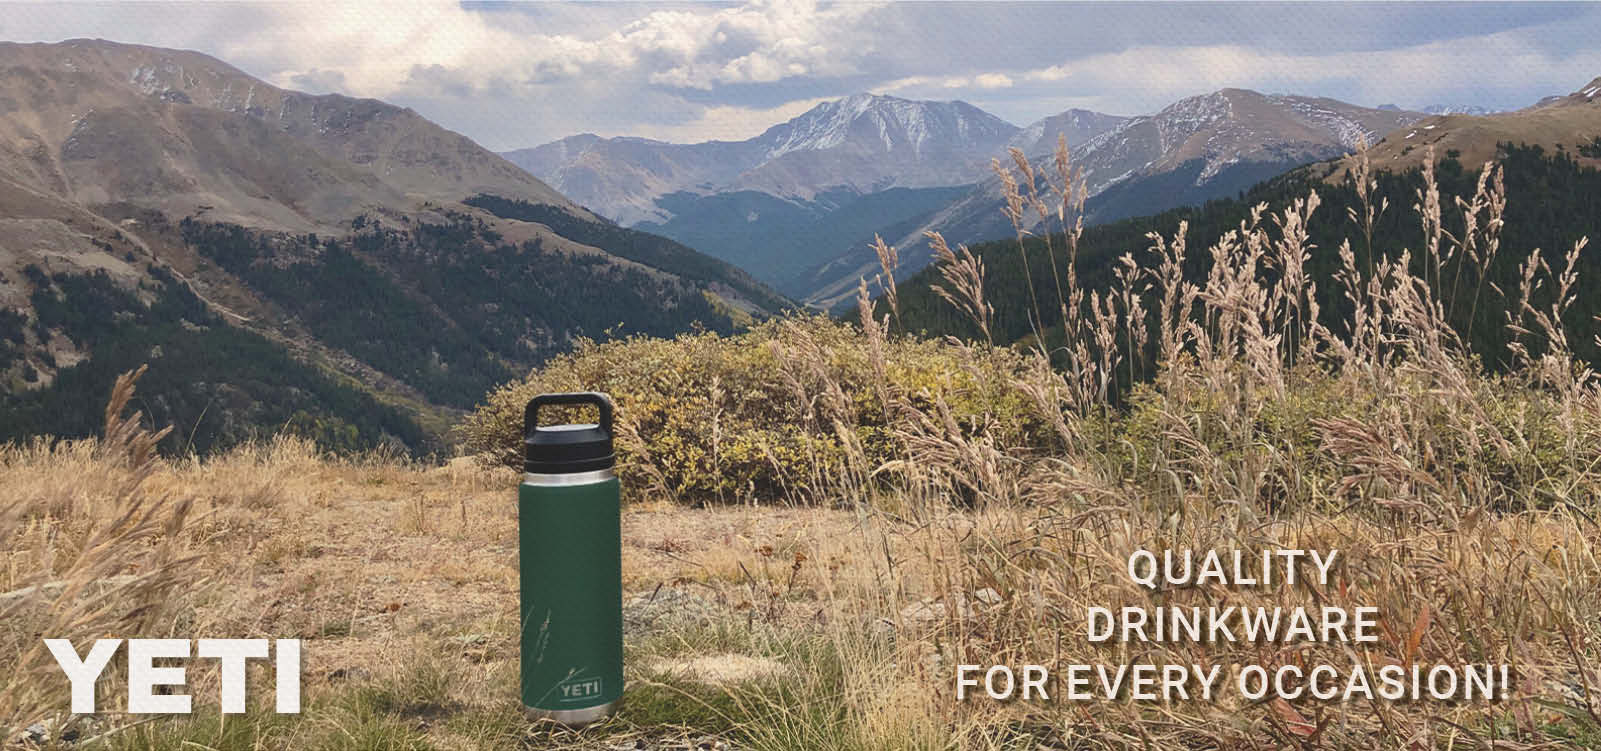 A Yeti water bottle overlayed on a mountain scene. Quality drinkware for every occasion.